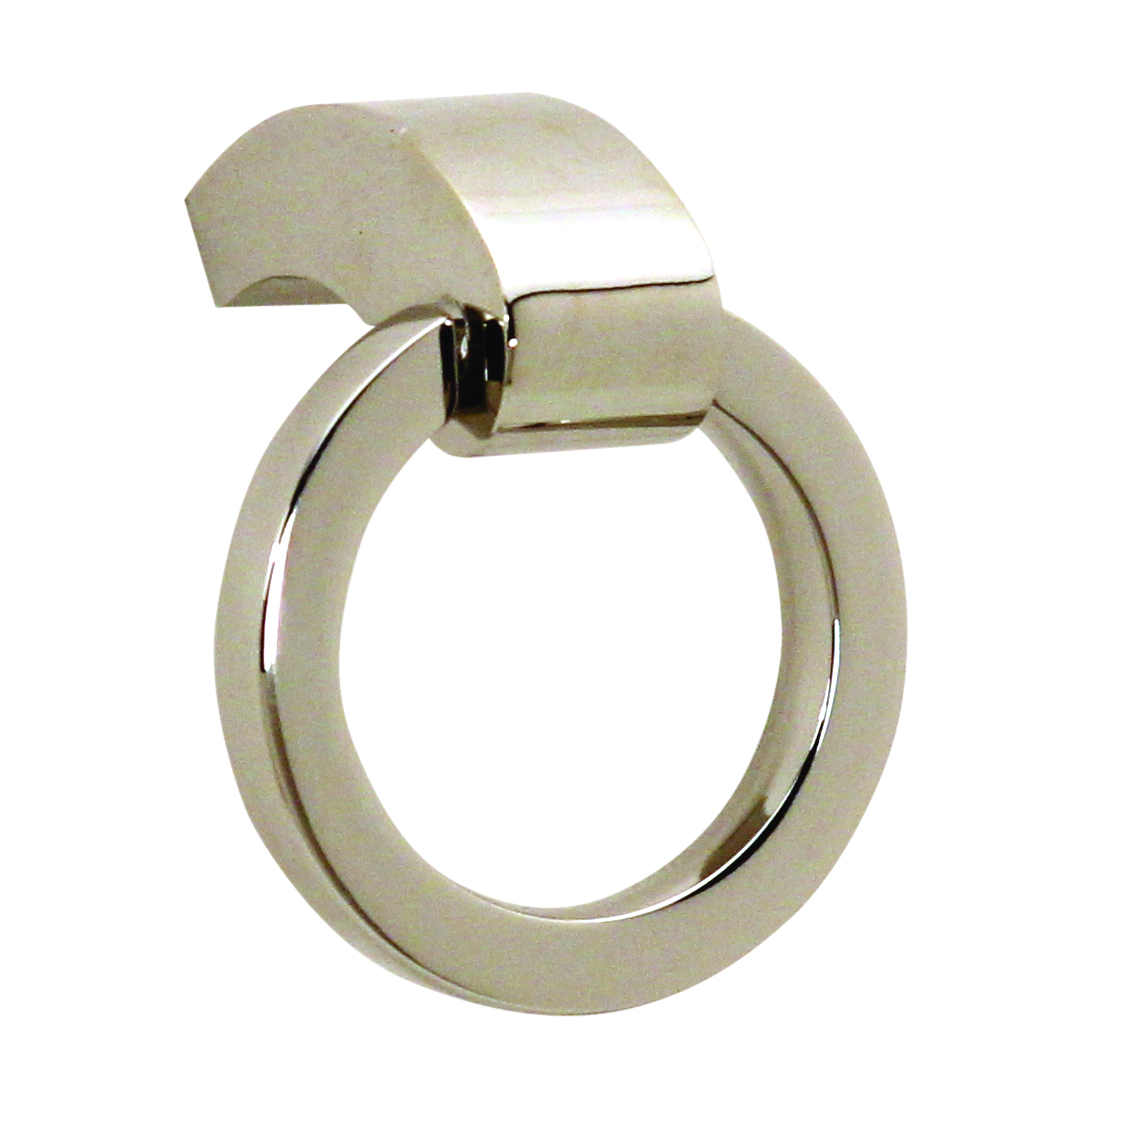 Circa Ring Pull A260 Creations By Alno Inc